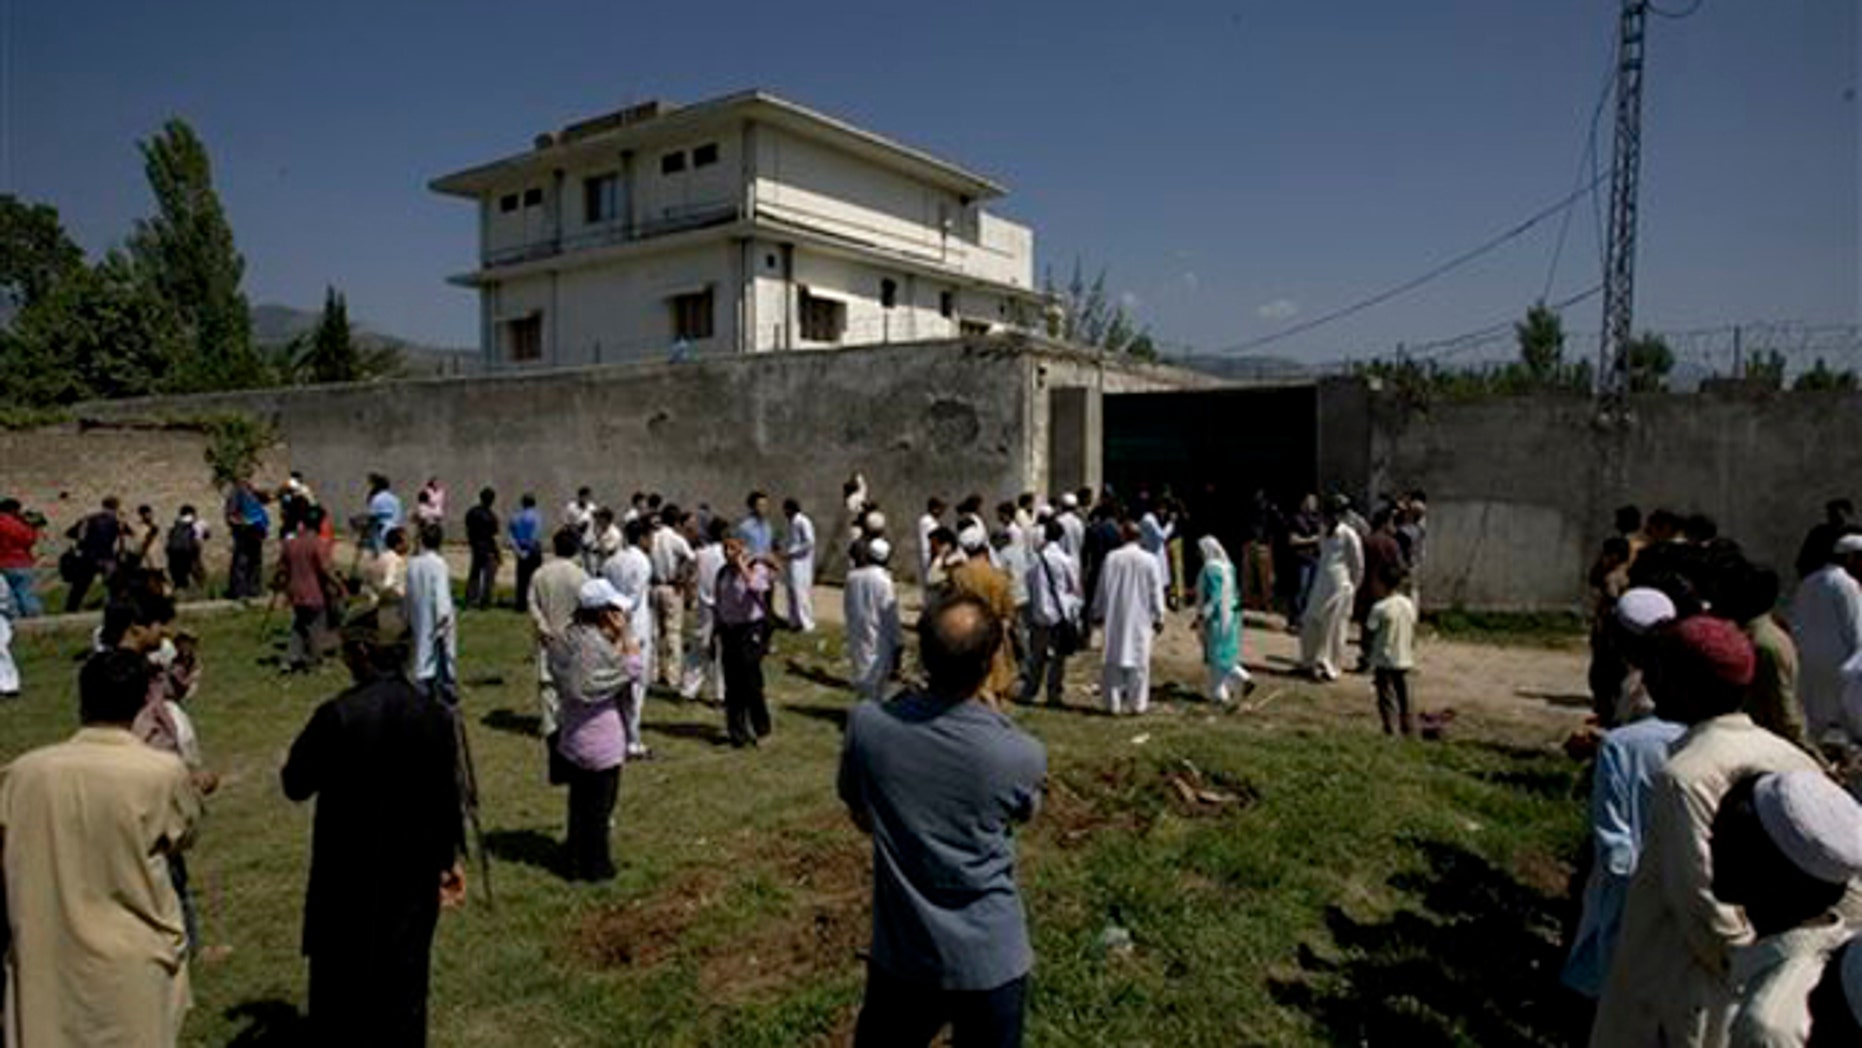 Local people and media gather outside the perimeter of the compound where Usama bin Laden was caught and killed in Abbottabad, Pakistan, May 3.